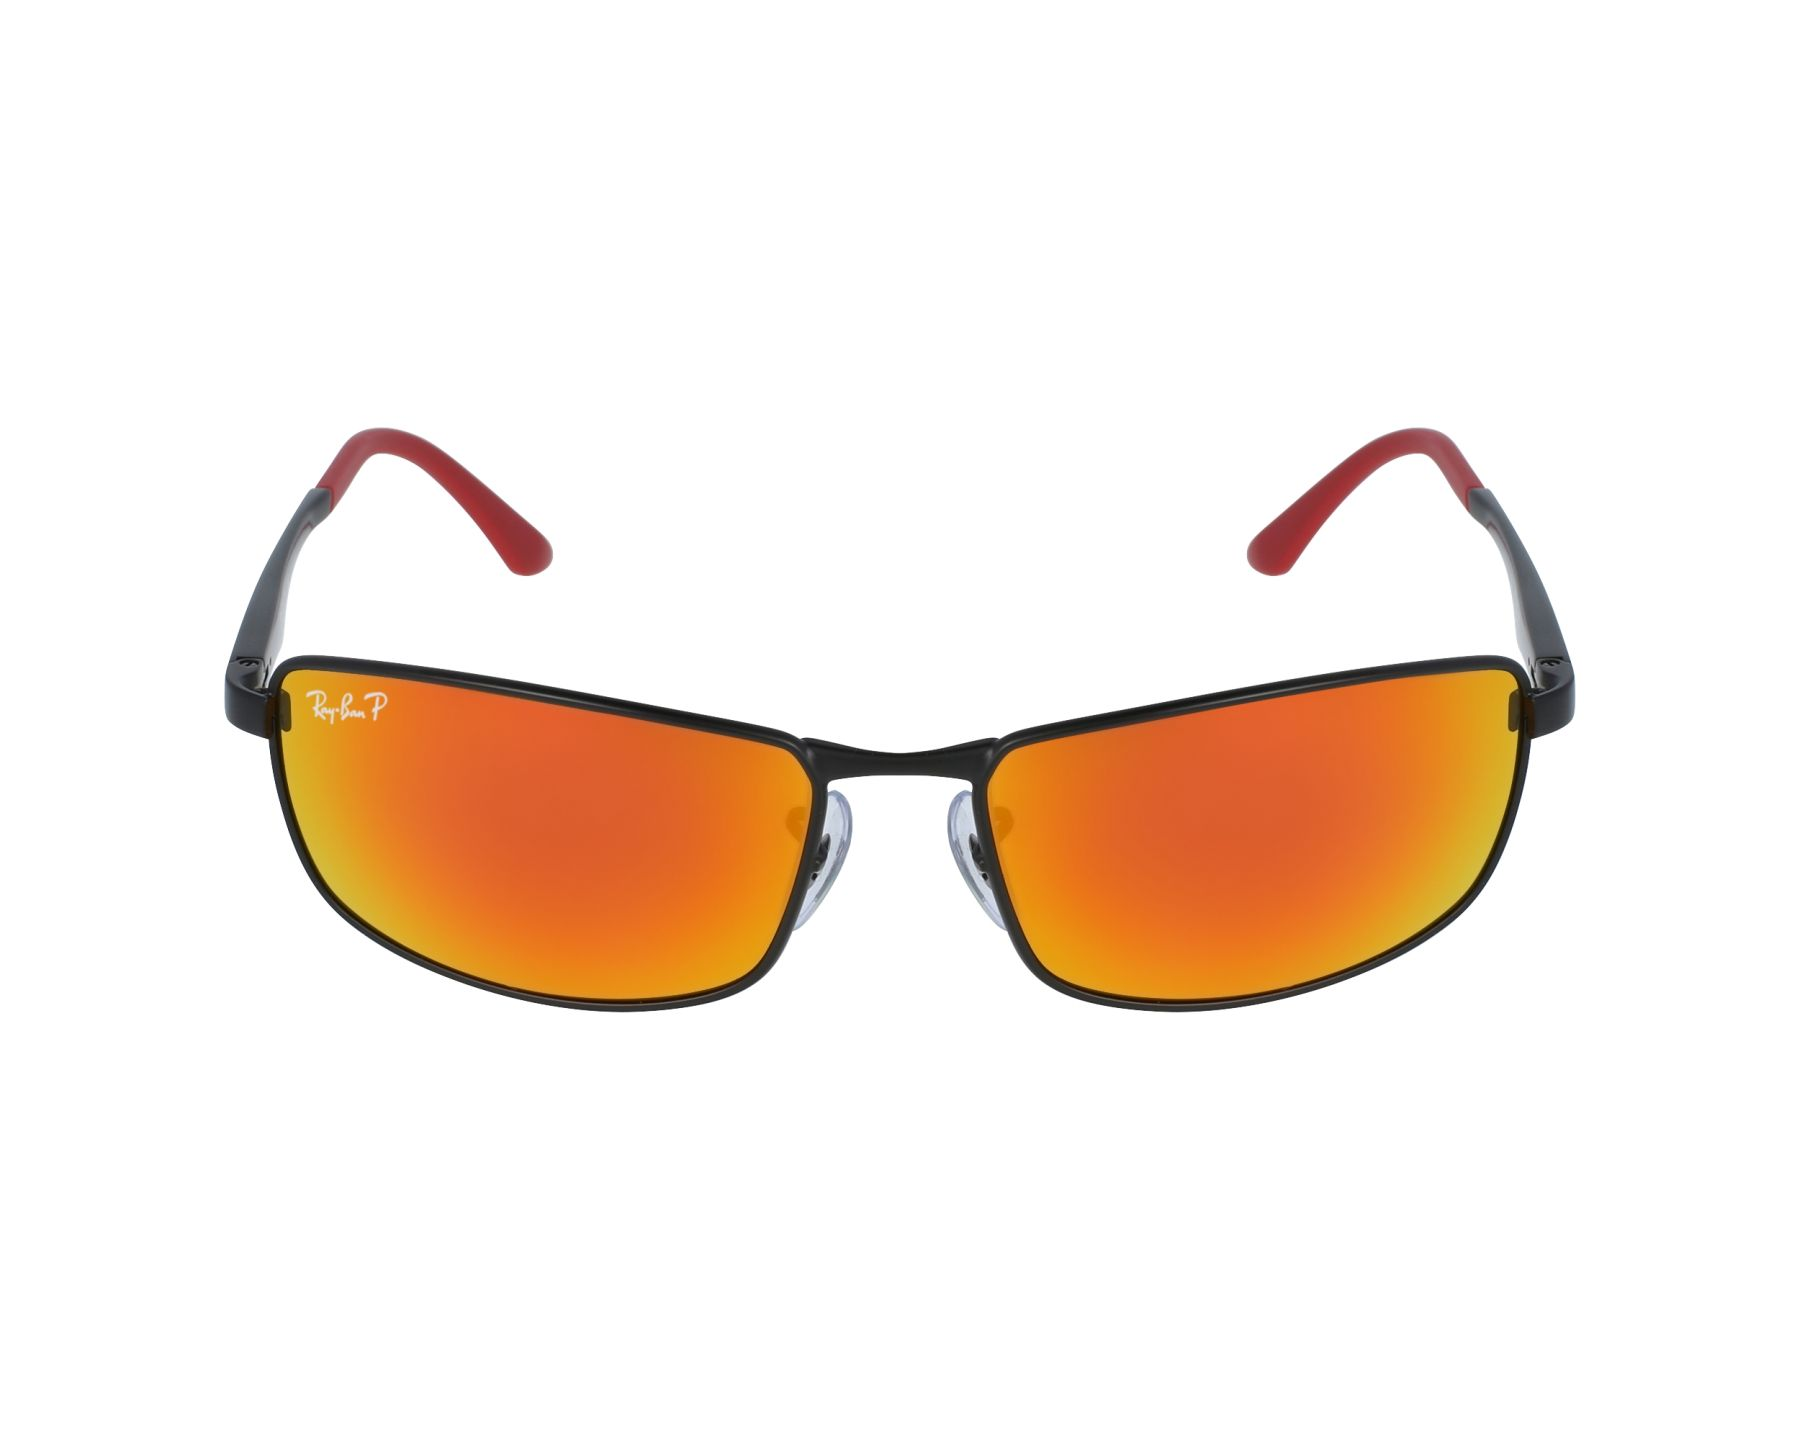 Ray-Ban Rb3498 006/6s 61-17 ujWVi